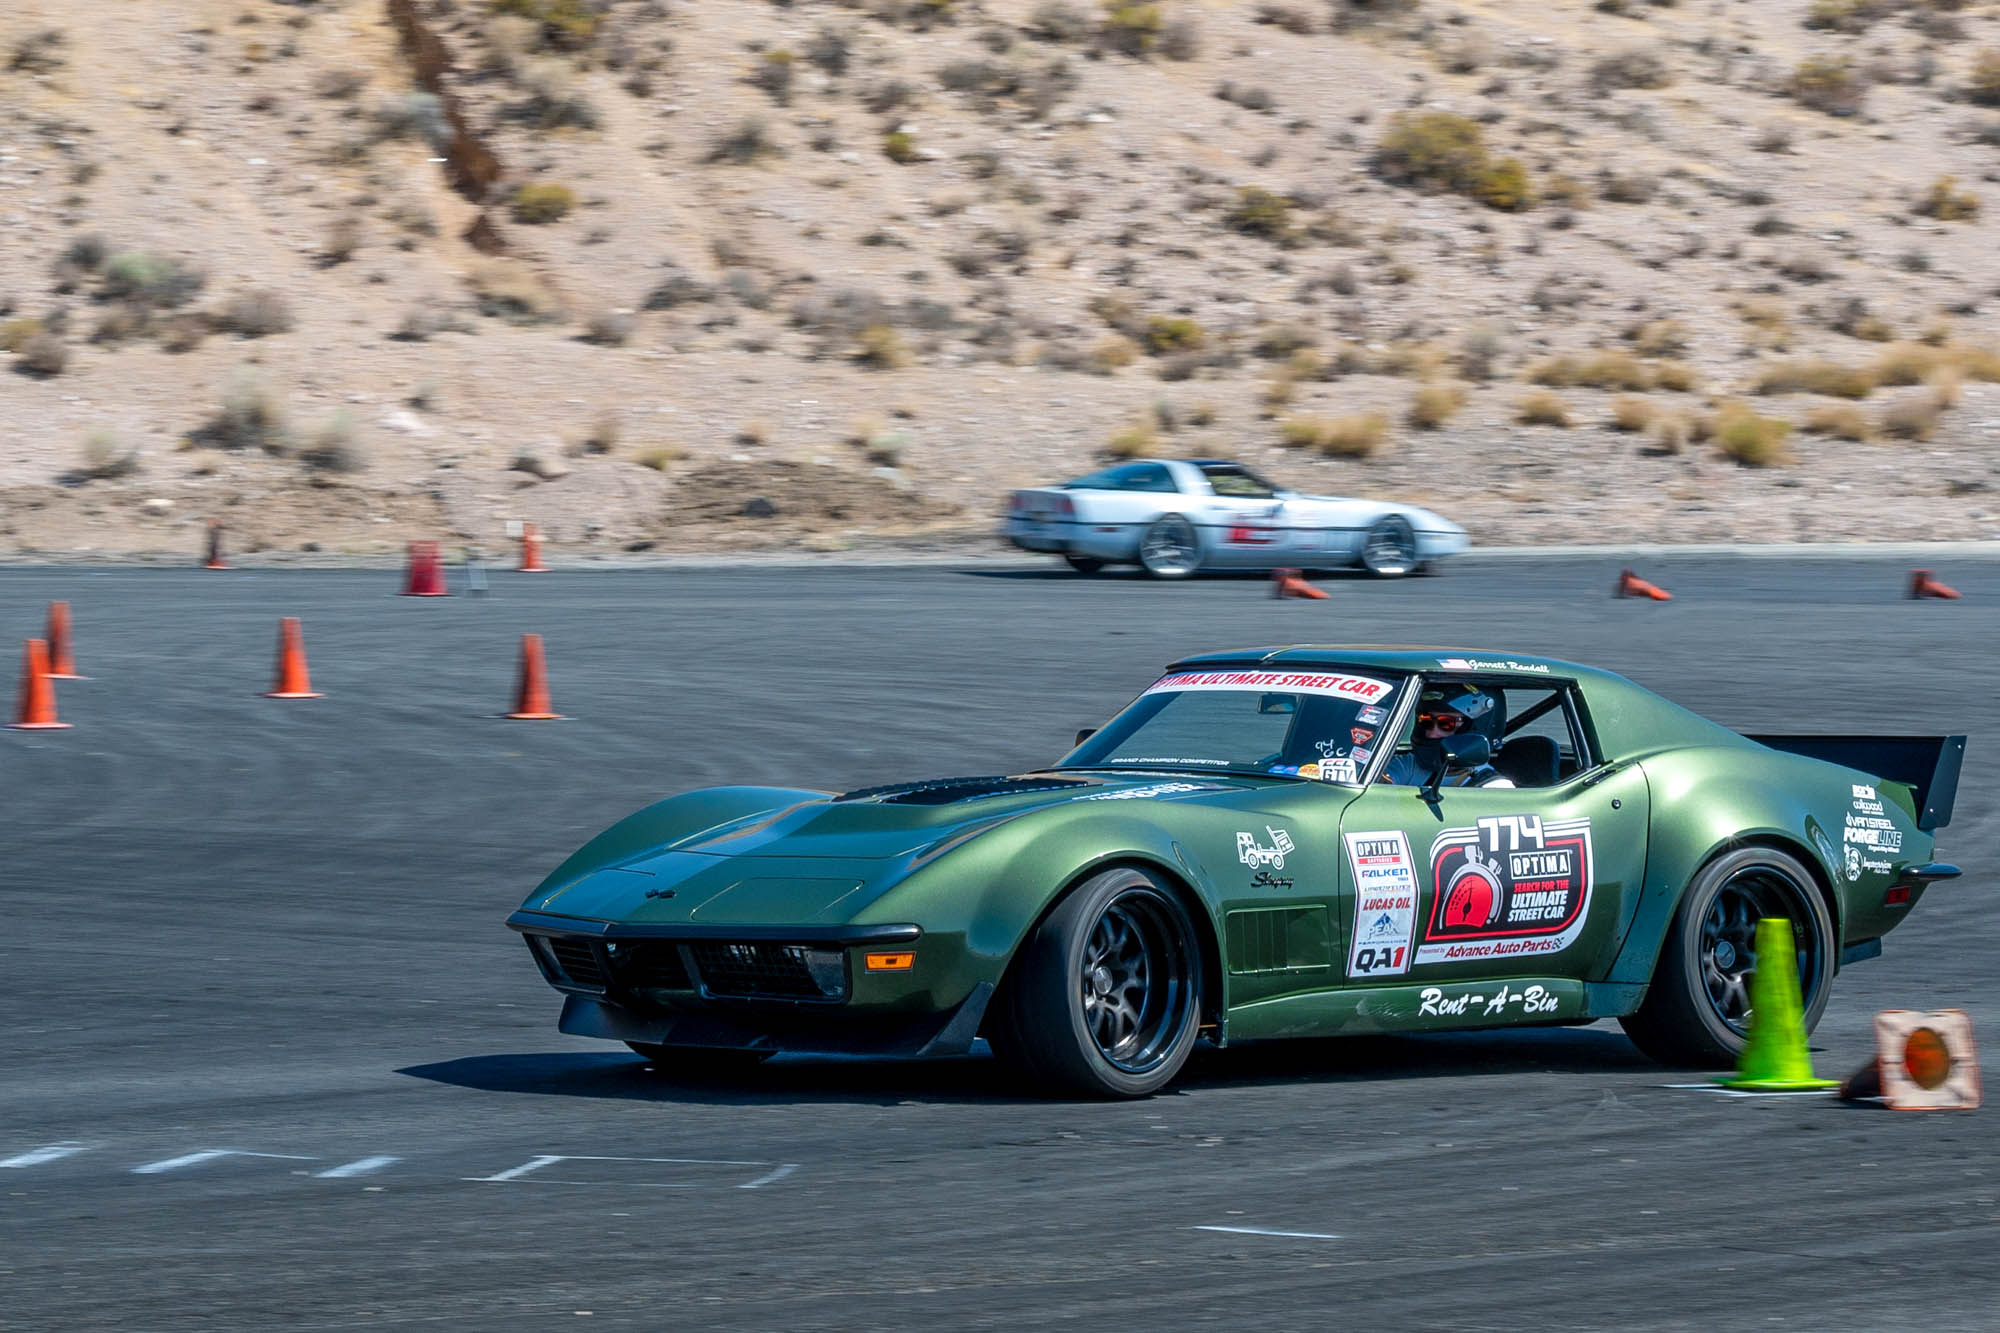 Ultimate Street Car 1970 and 1985 Chevy Corvettes